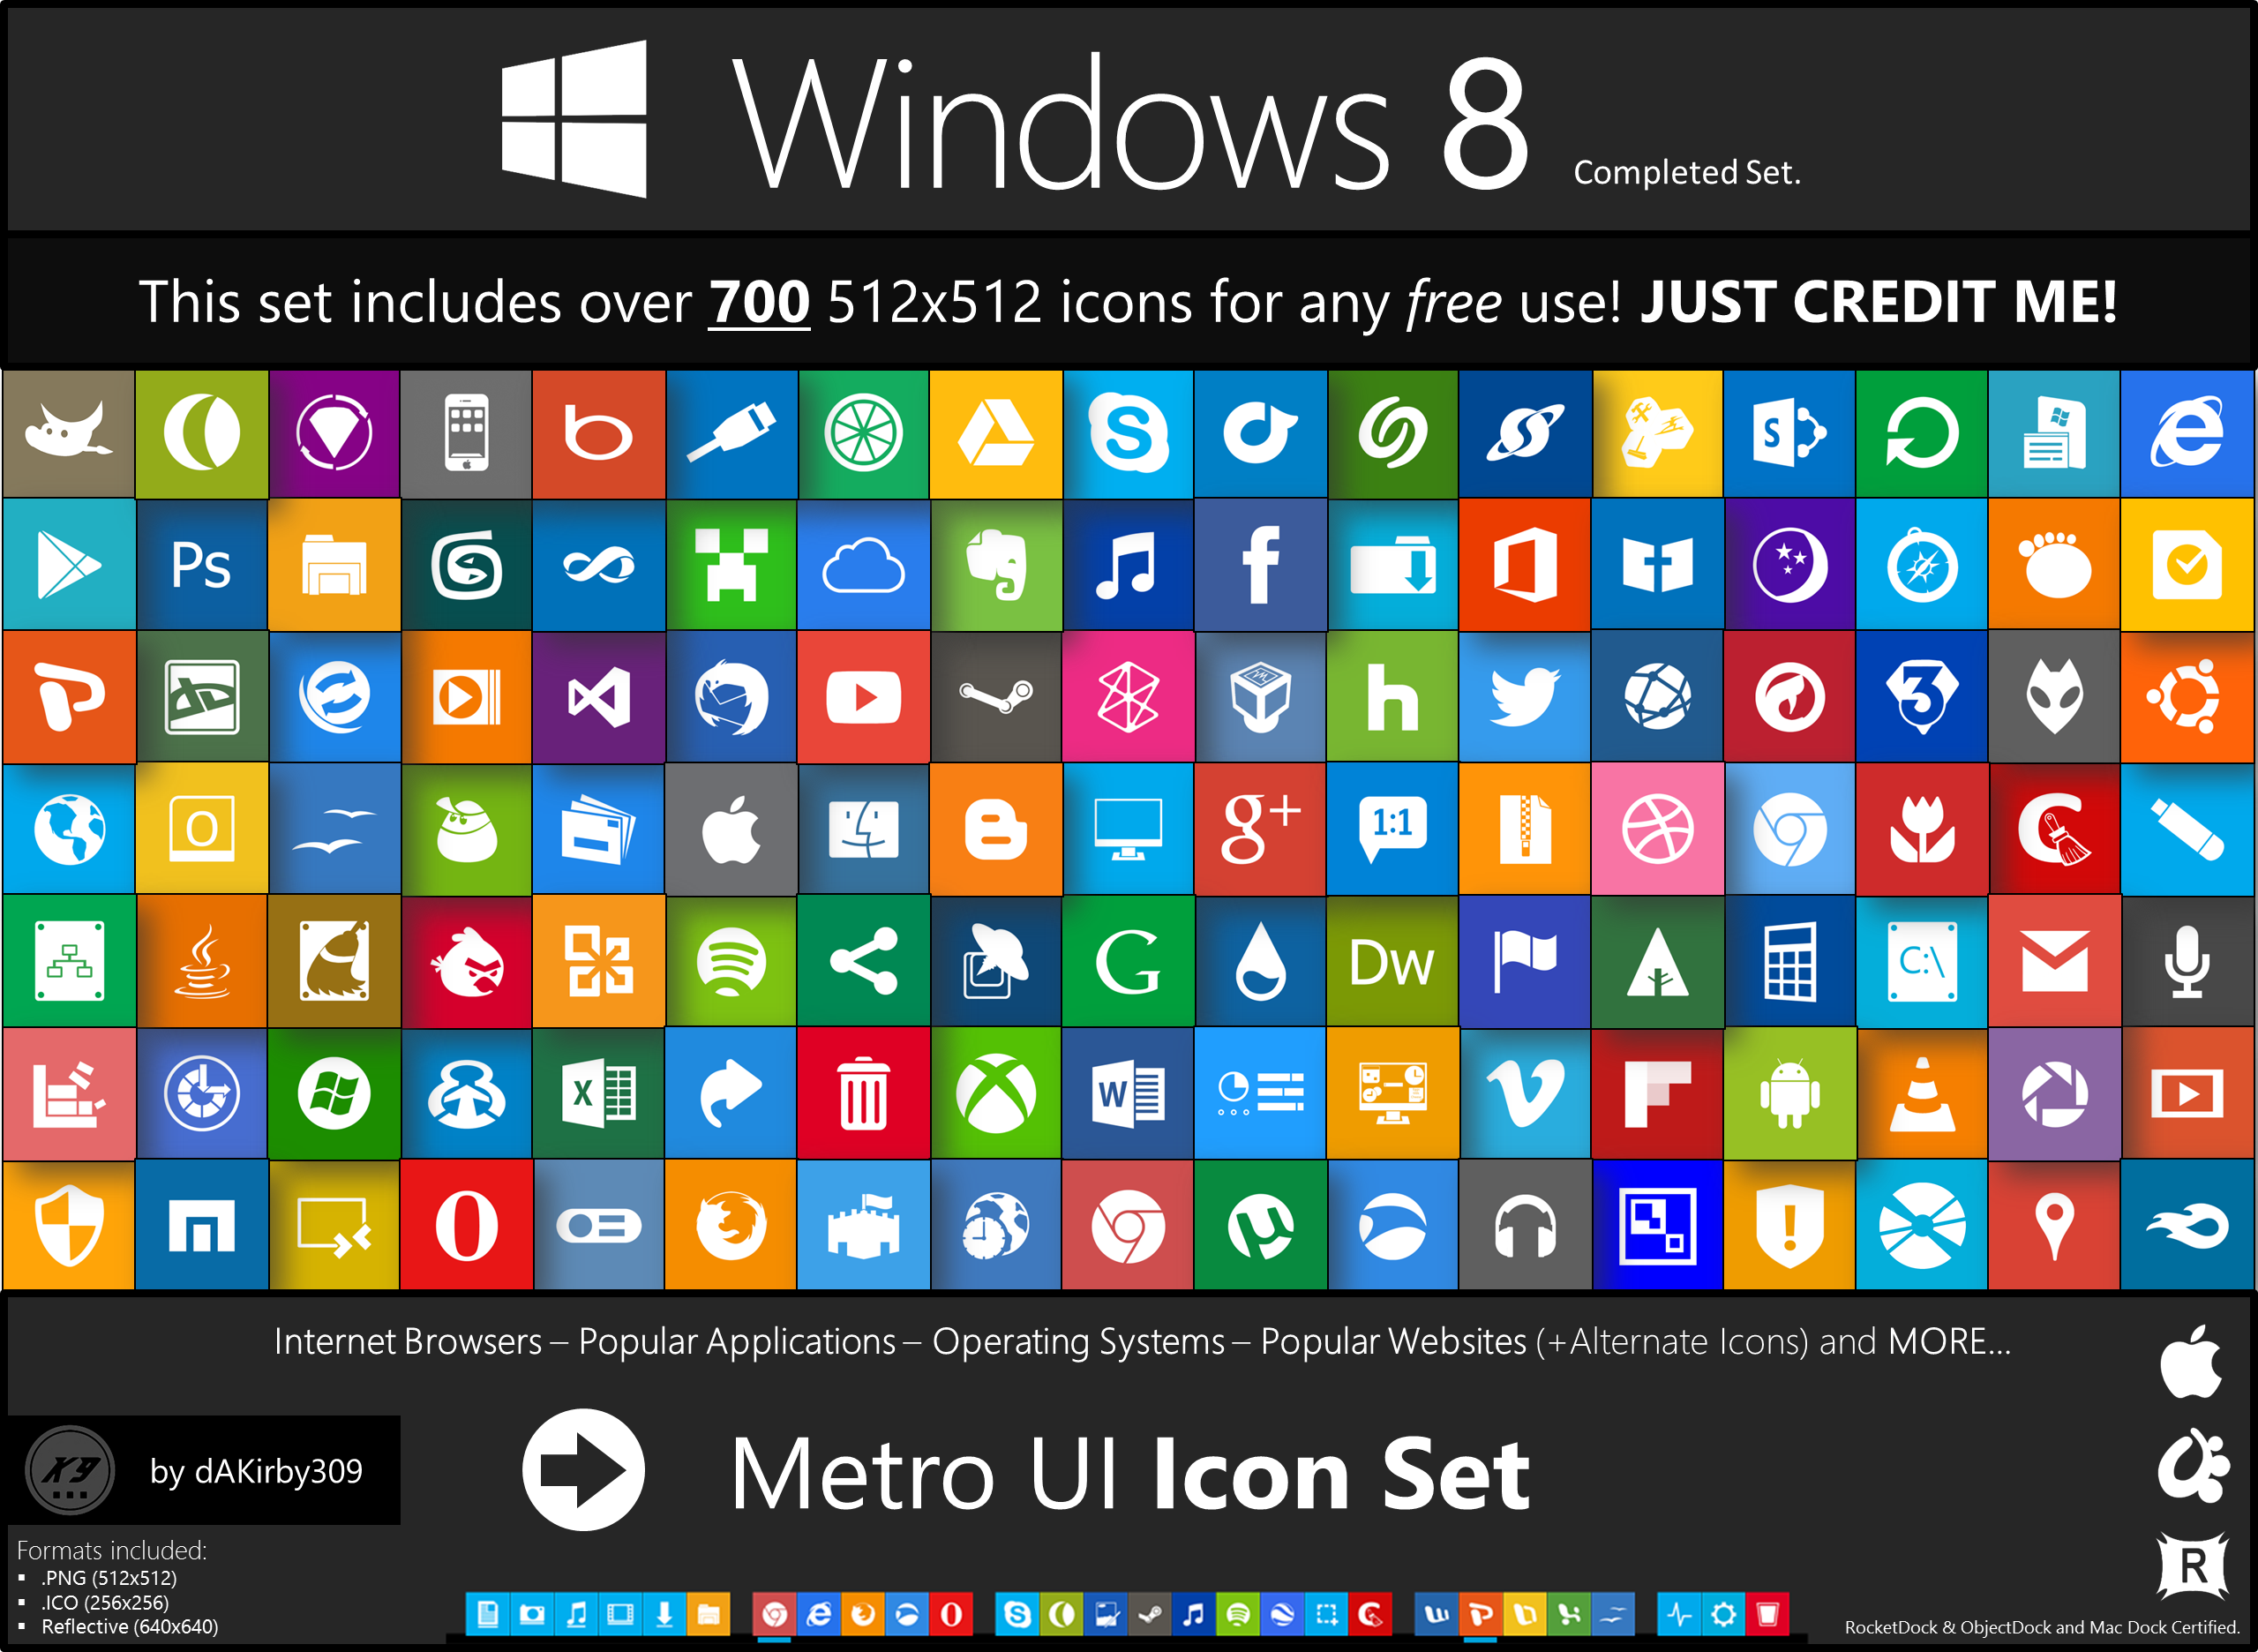 Metro UI Icon Set - 725 Icons